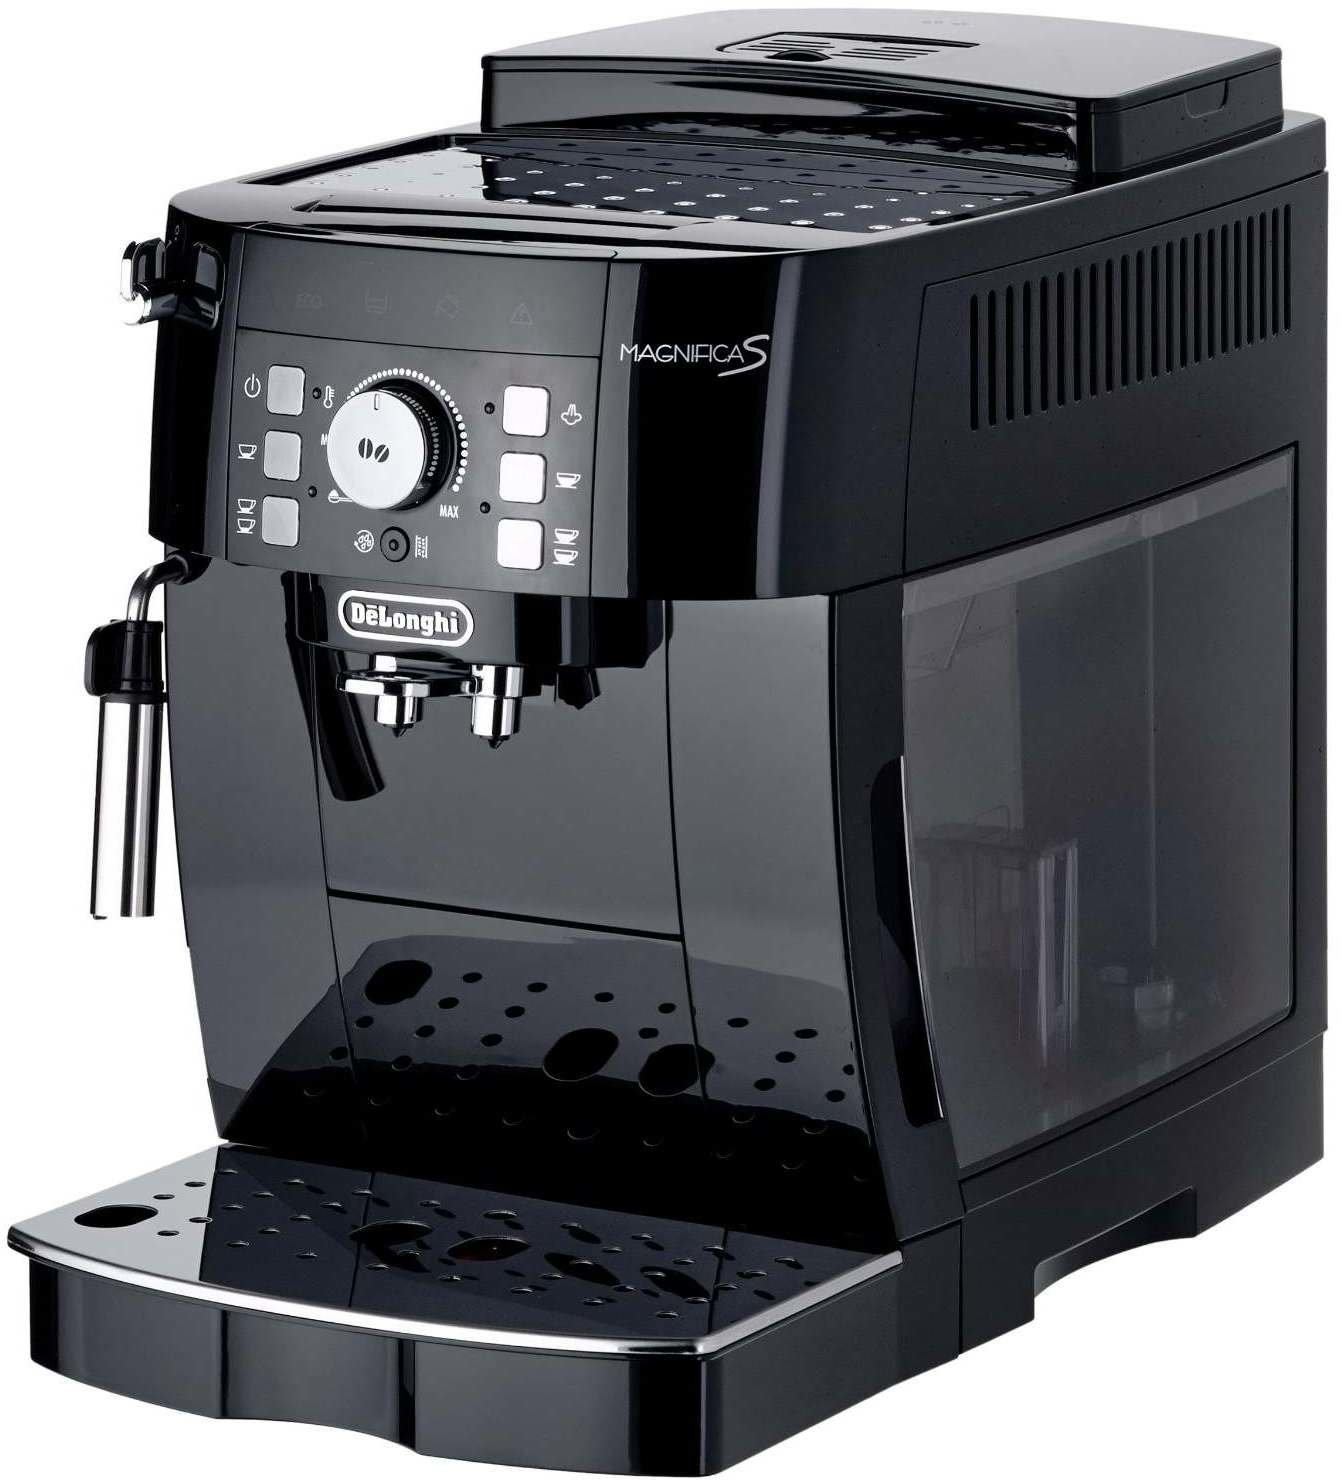 test kaffeevollautomaten delonghi von check24. Black Bedroom Furniture Sets. Home Design Ideas